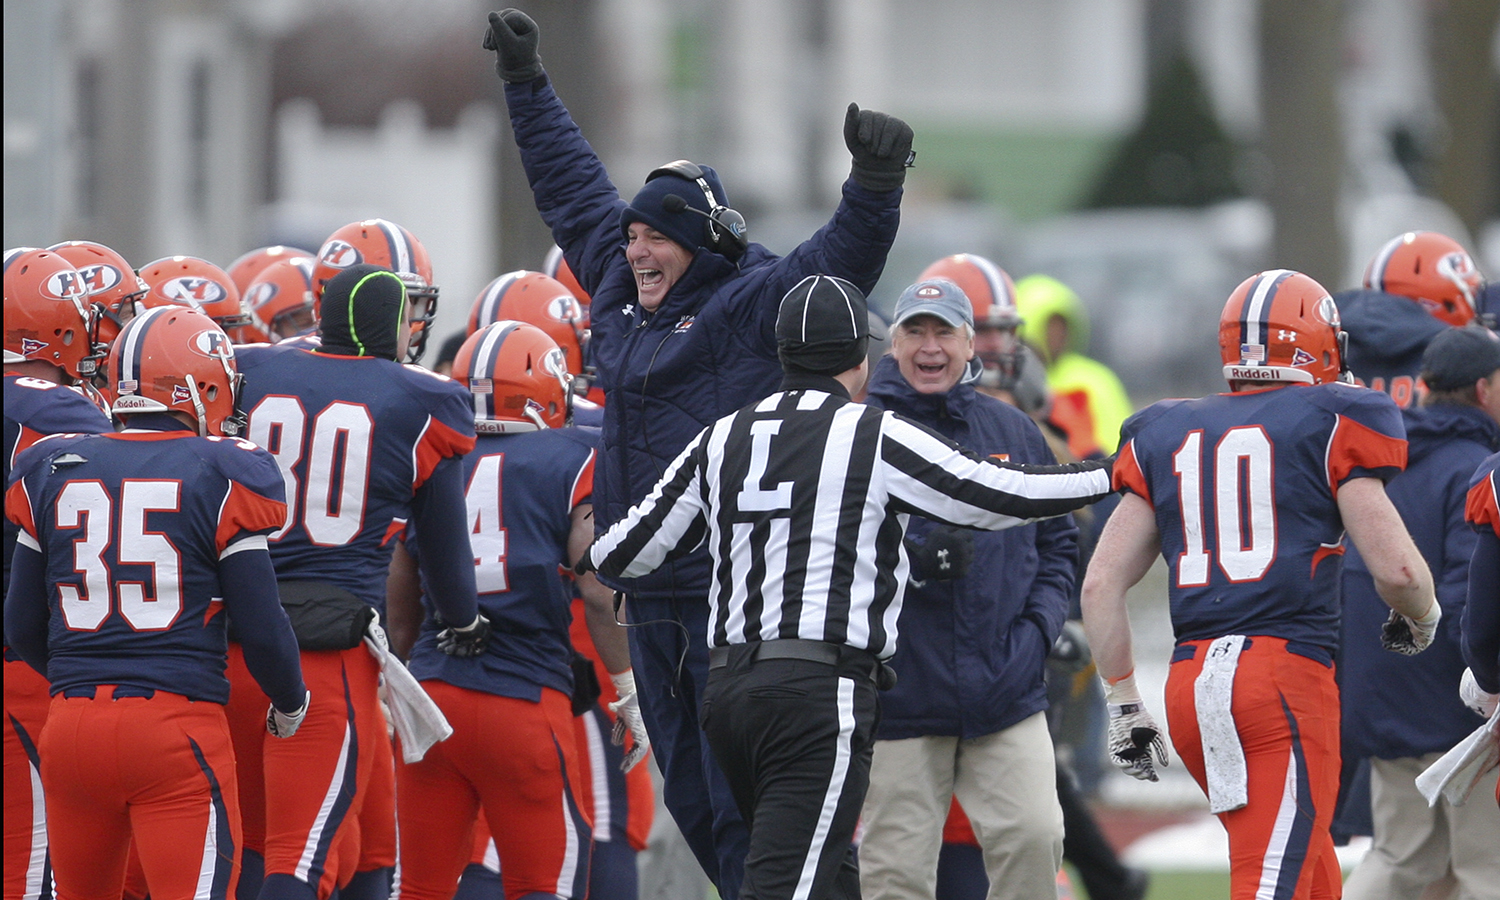 Hobart Head Football Coach Mike Cragg celebrates after a touchdown.